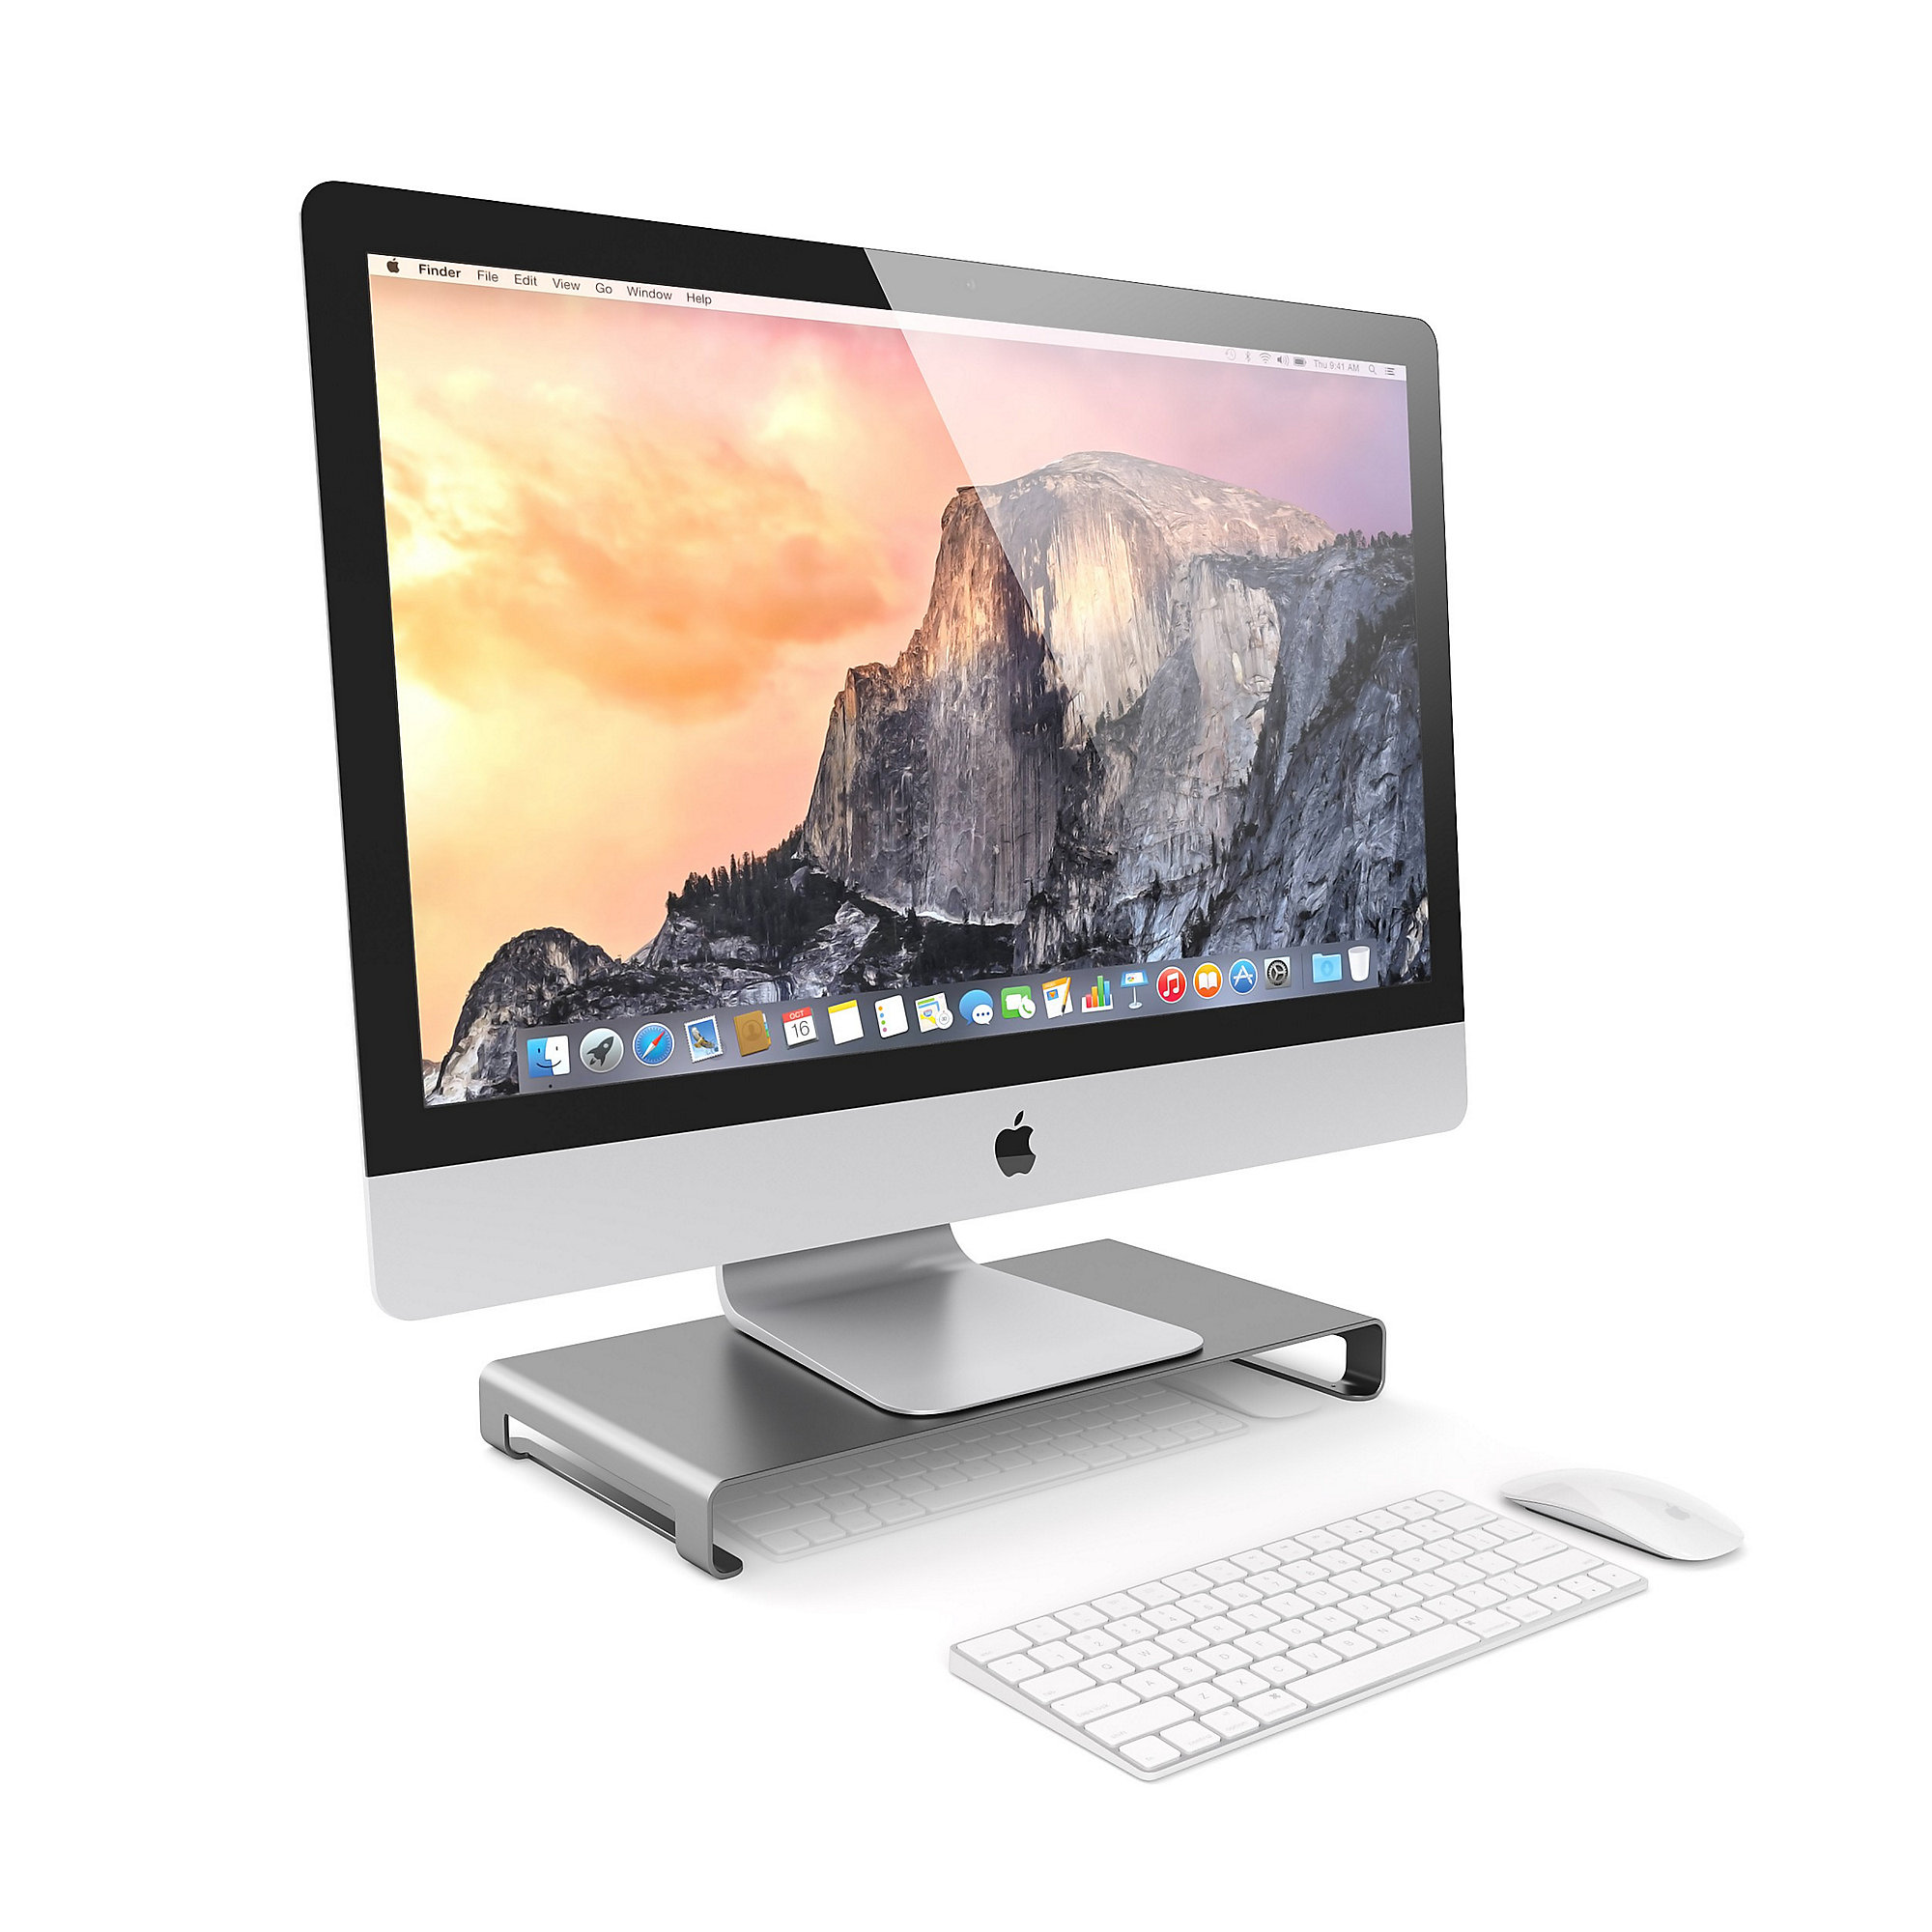 Satechi Slim Aluminum Monitor Stand Space Gray